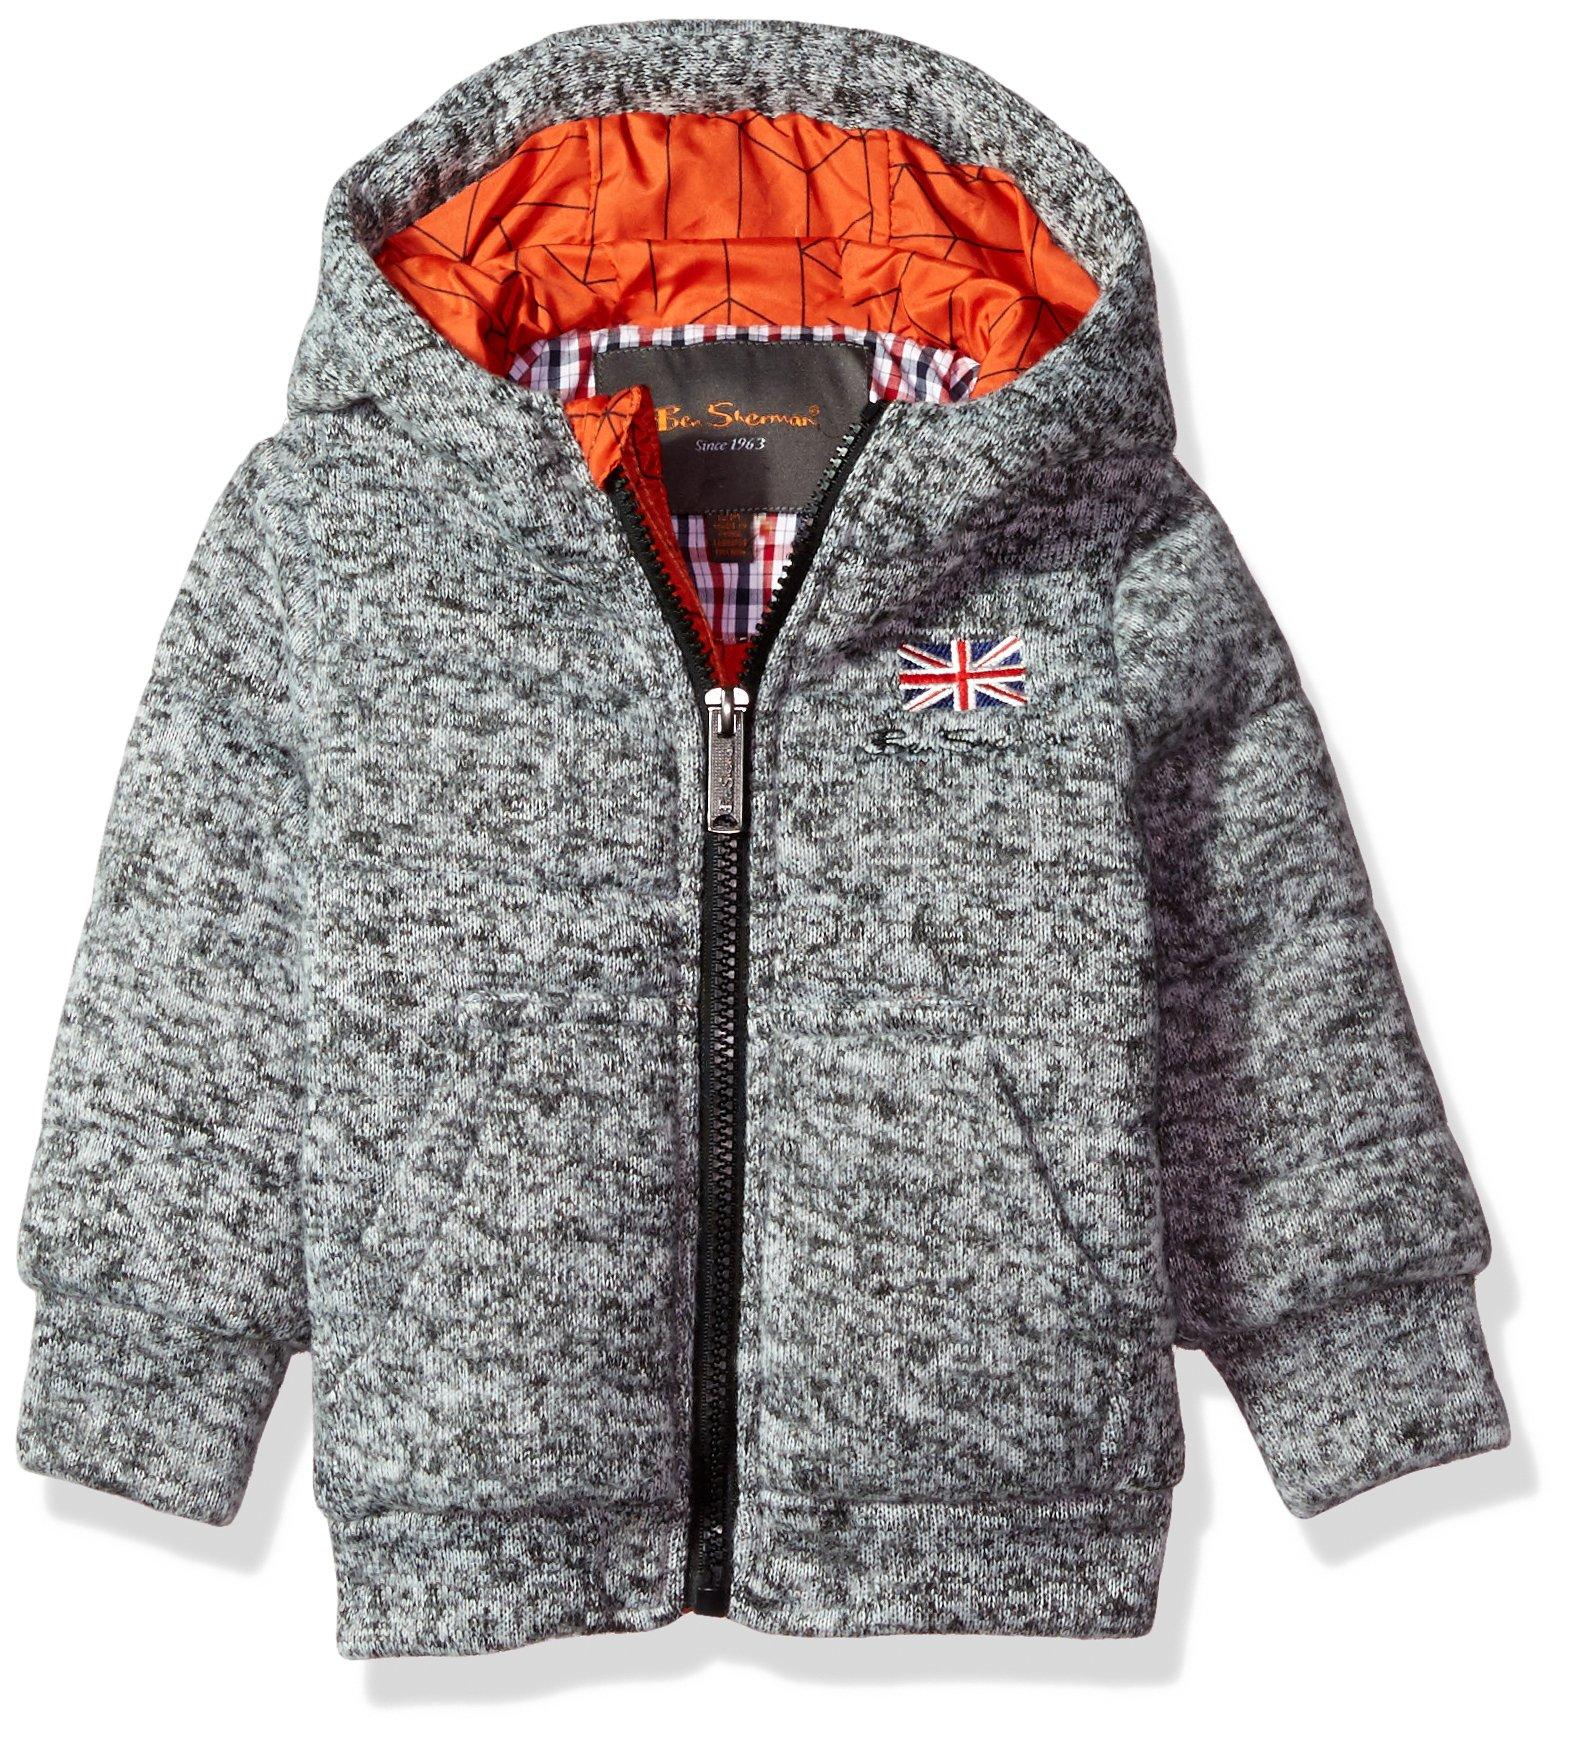 Ben Sherman Baby Boys Fashion Outerwear Jacket (More Styles Available), mid Grey, 24M by Ben Sherman